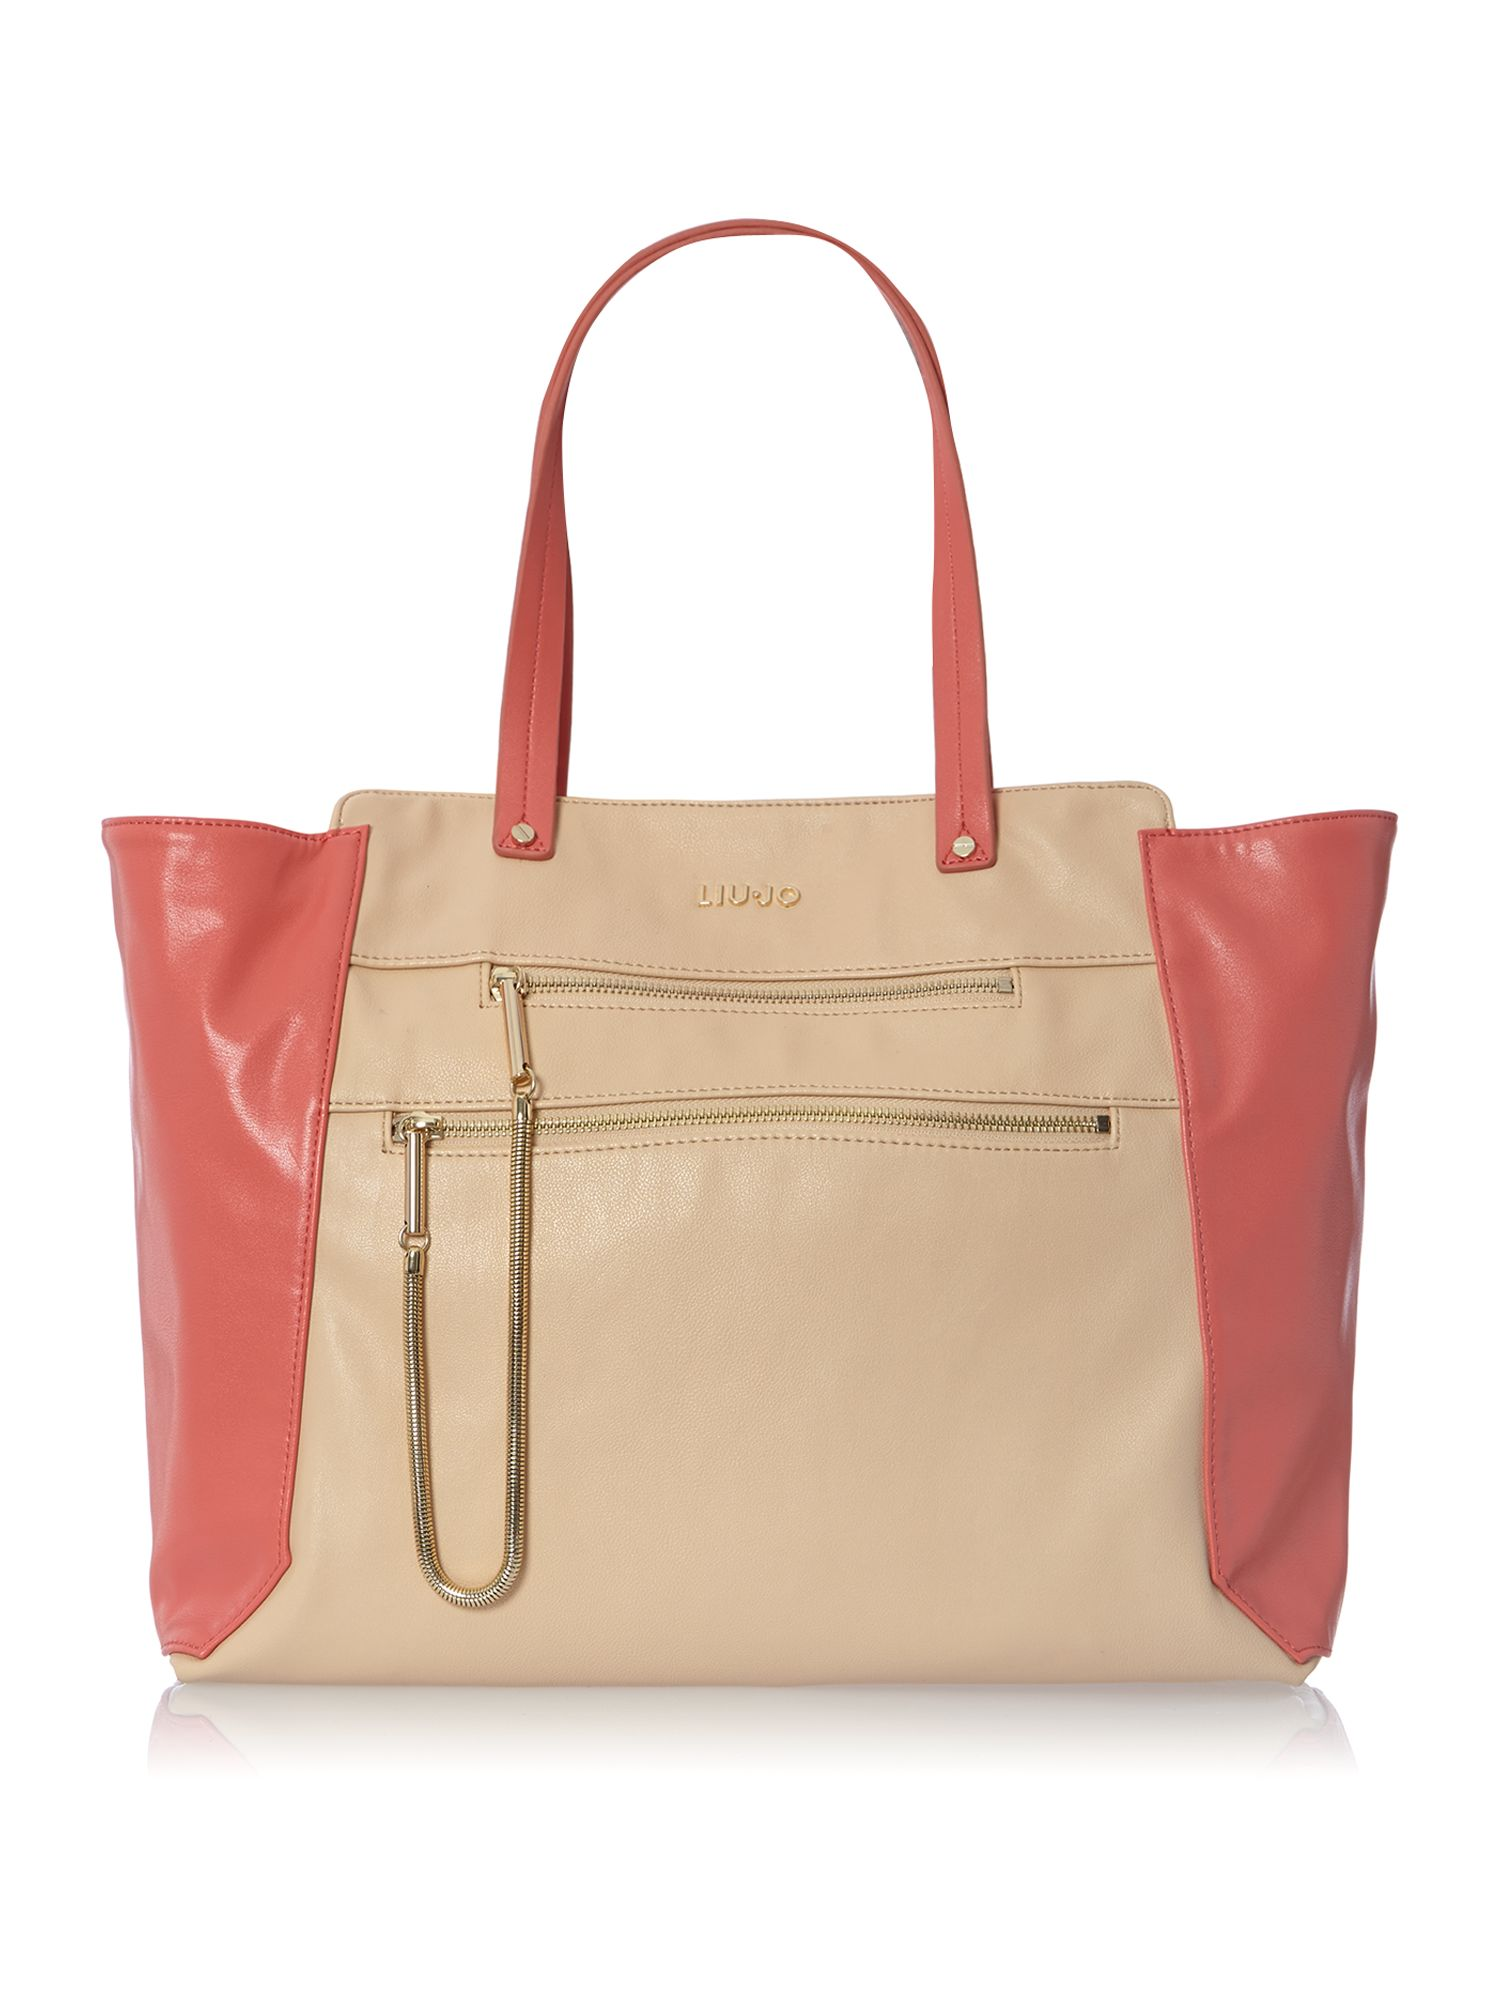 Febe multi-coloured tote bag